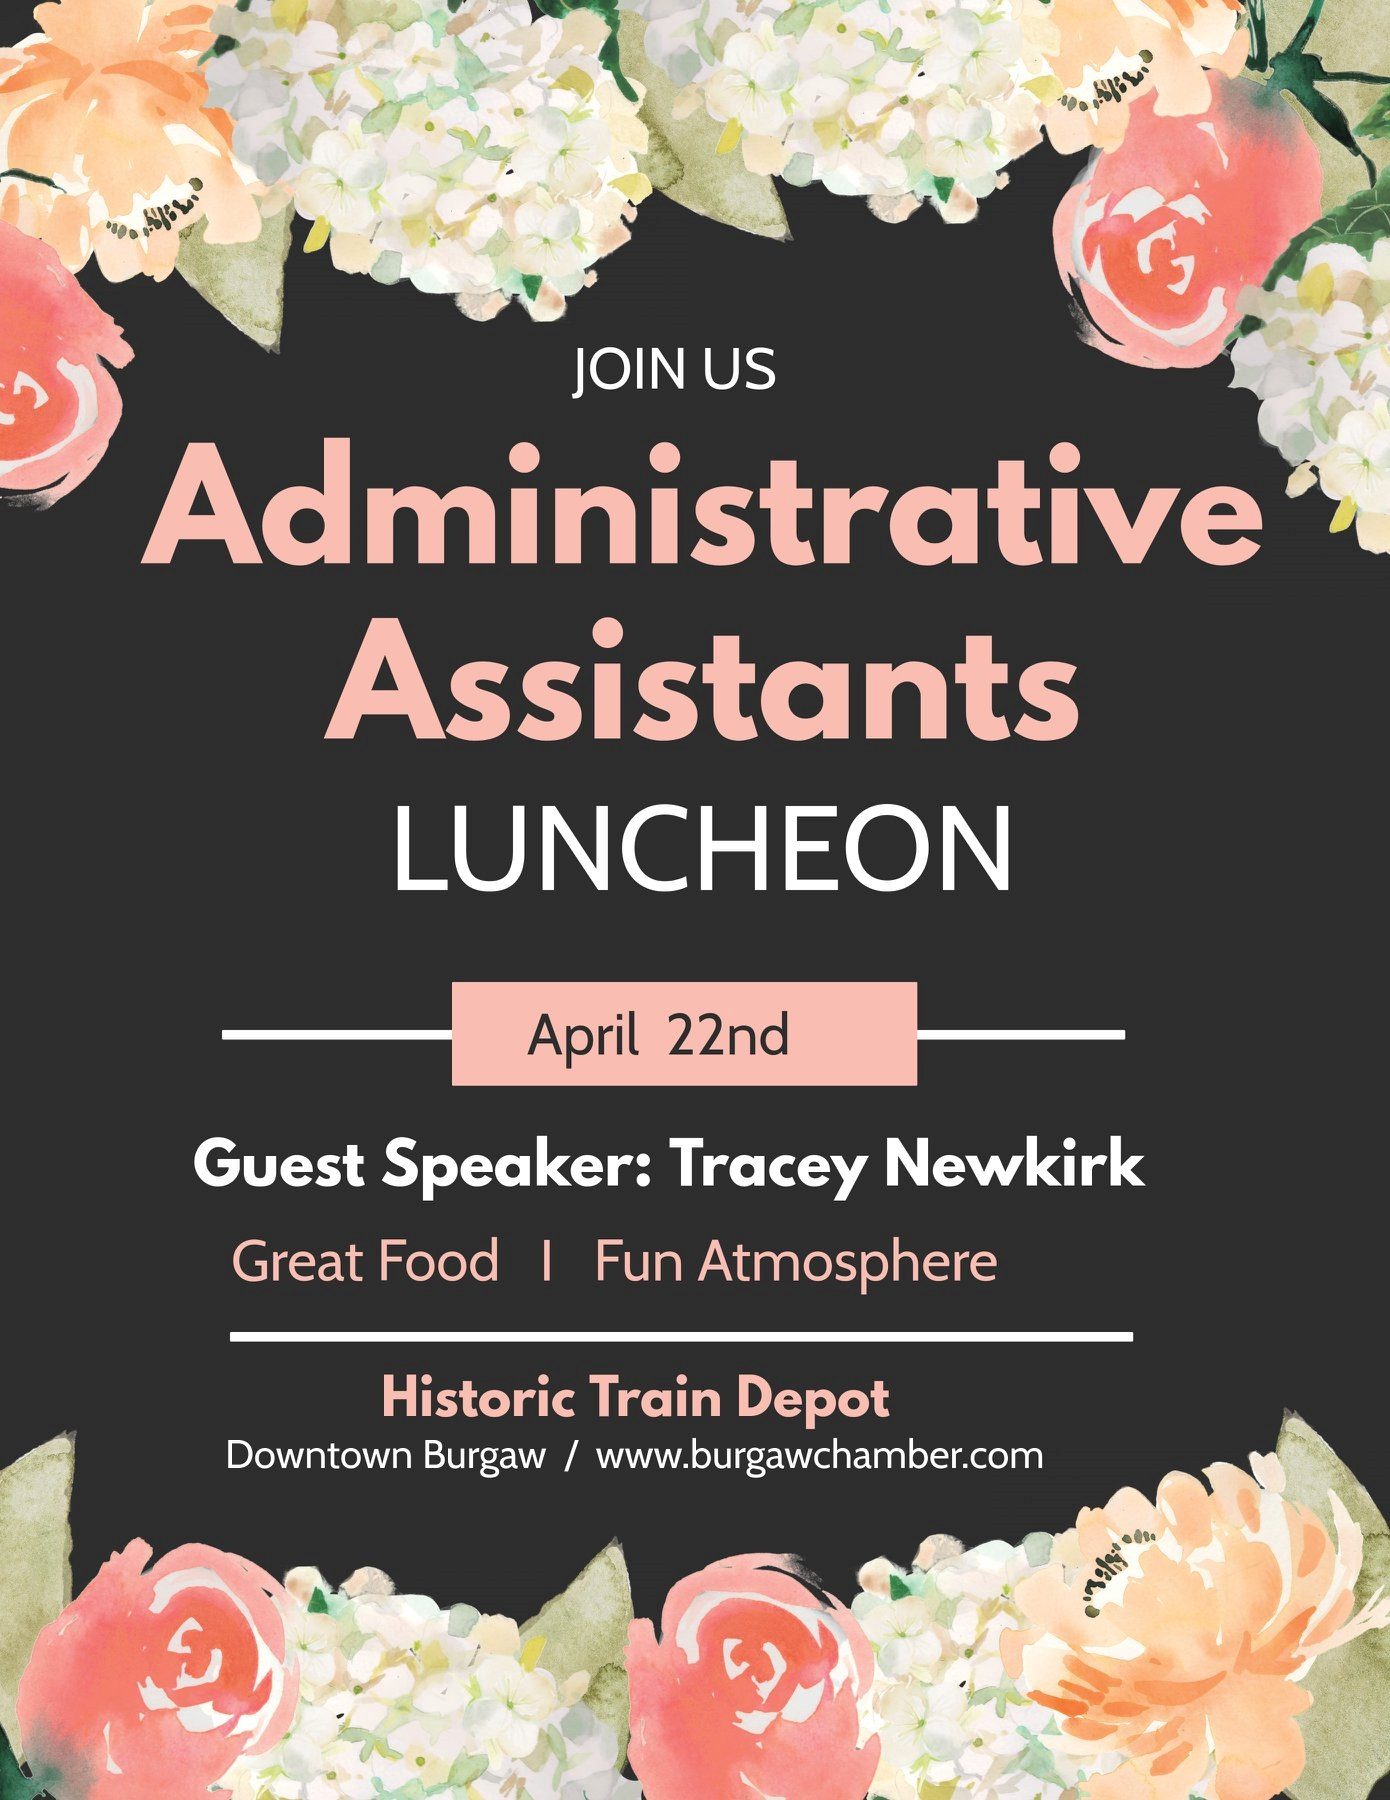 Administrative Assistants Luncheon